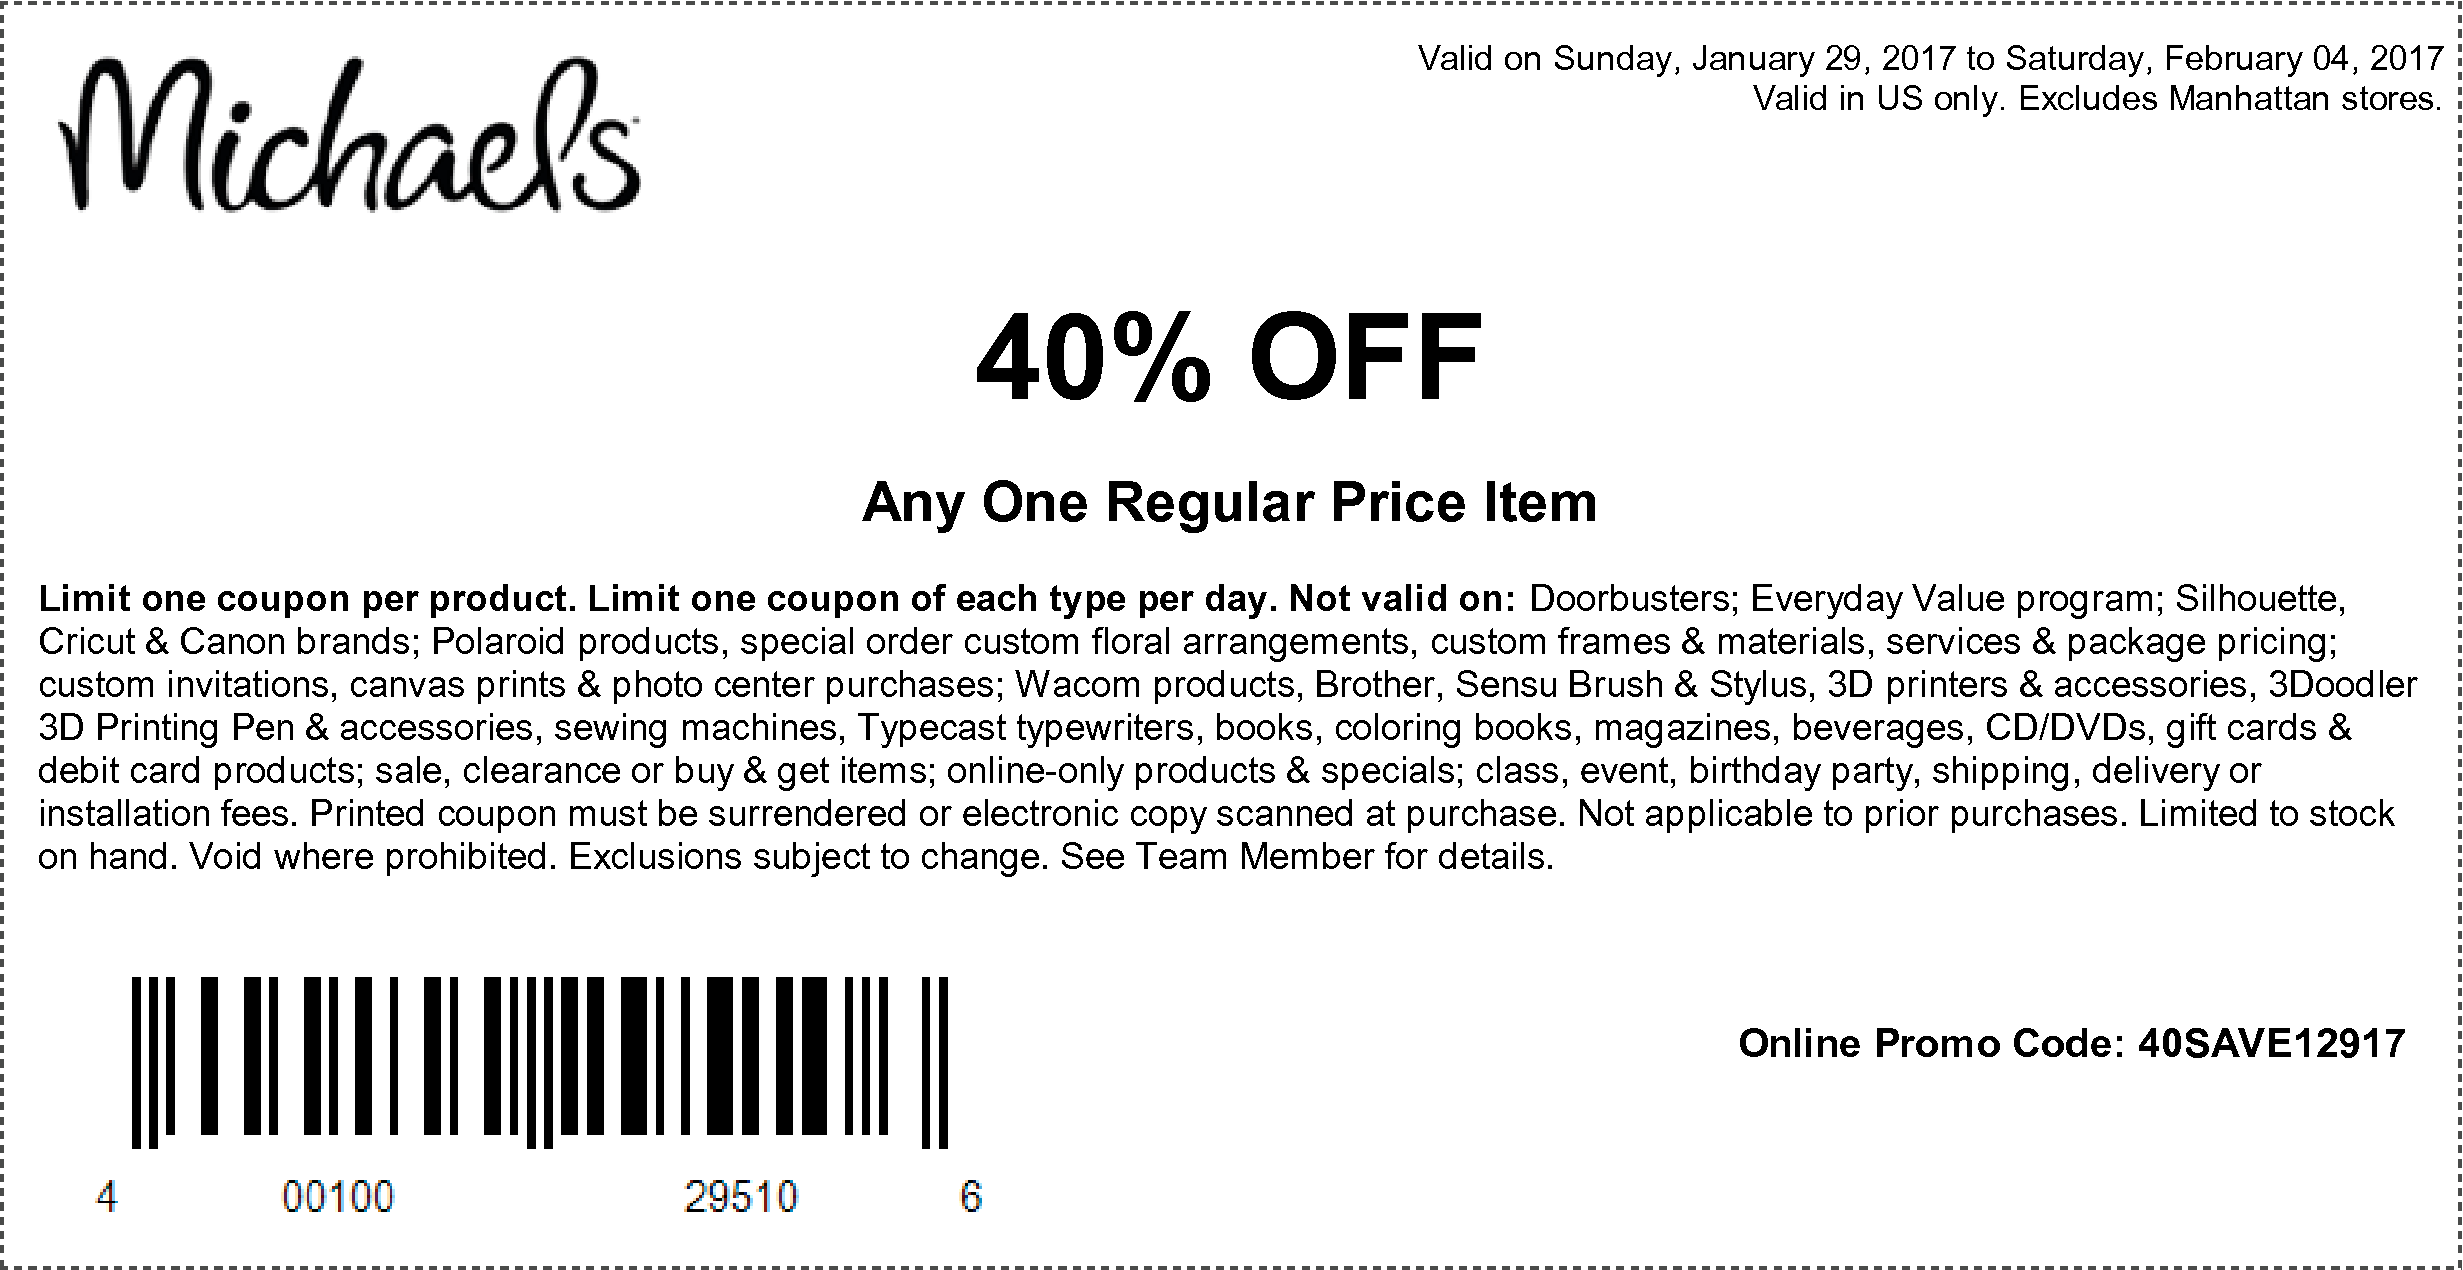 Sunday Savings Craft Store Coupons Deals For 01 29 17